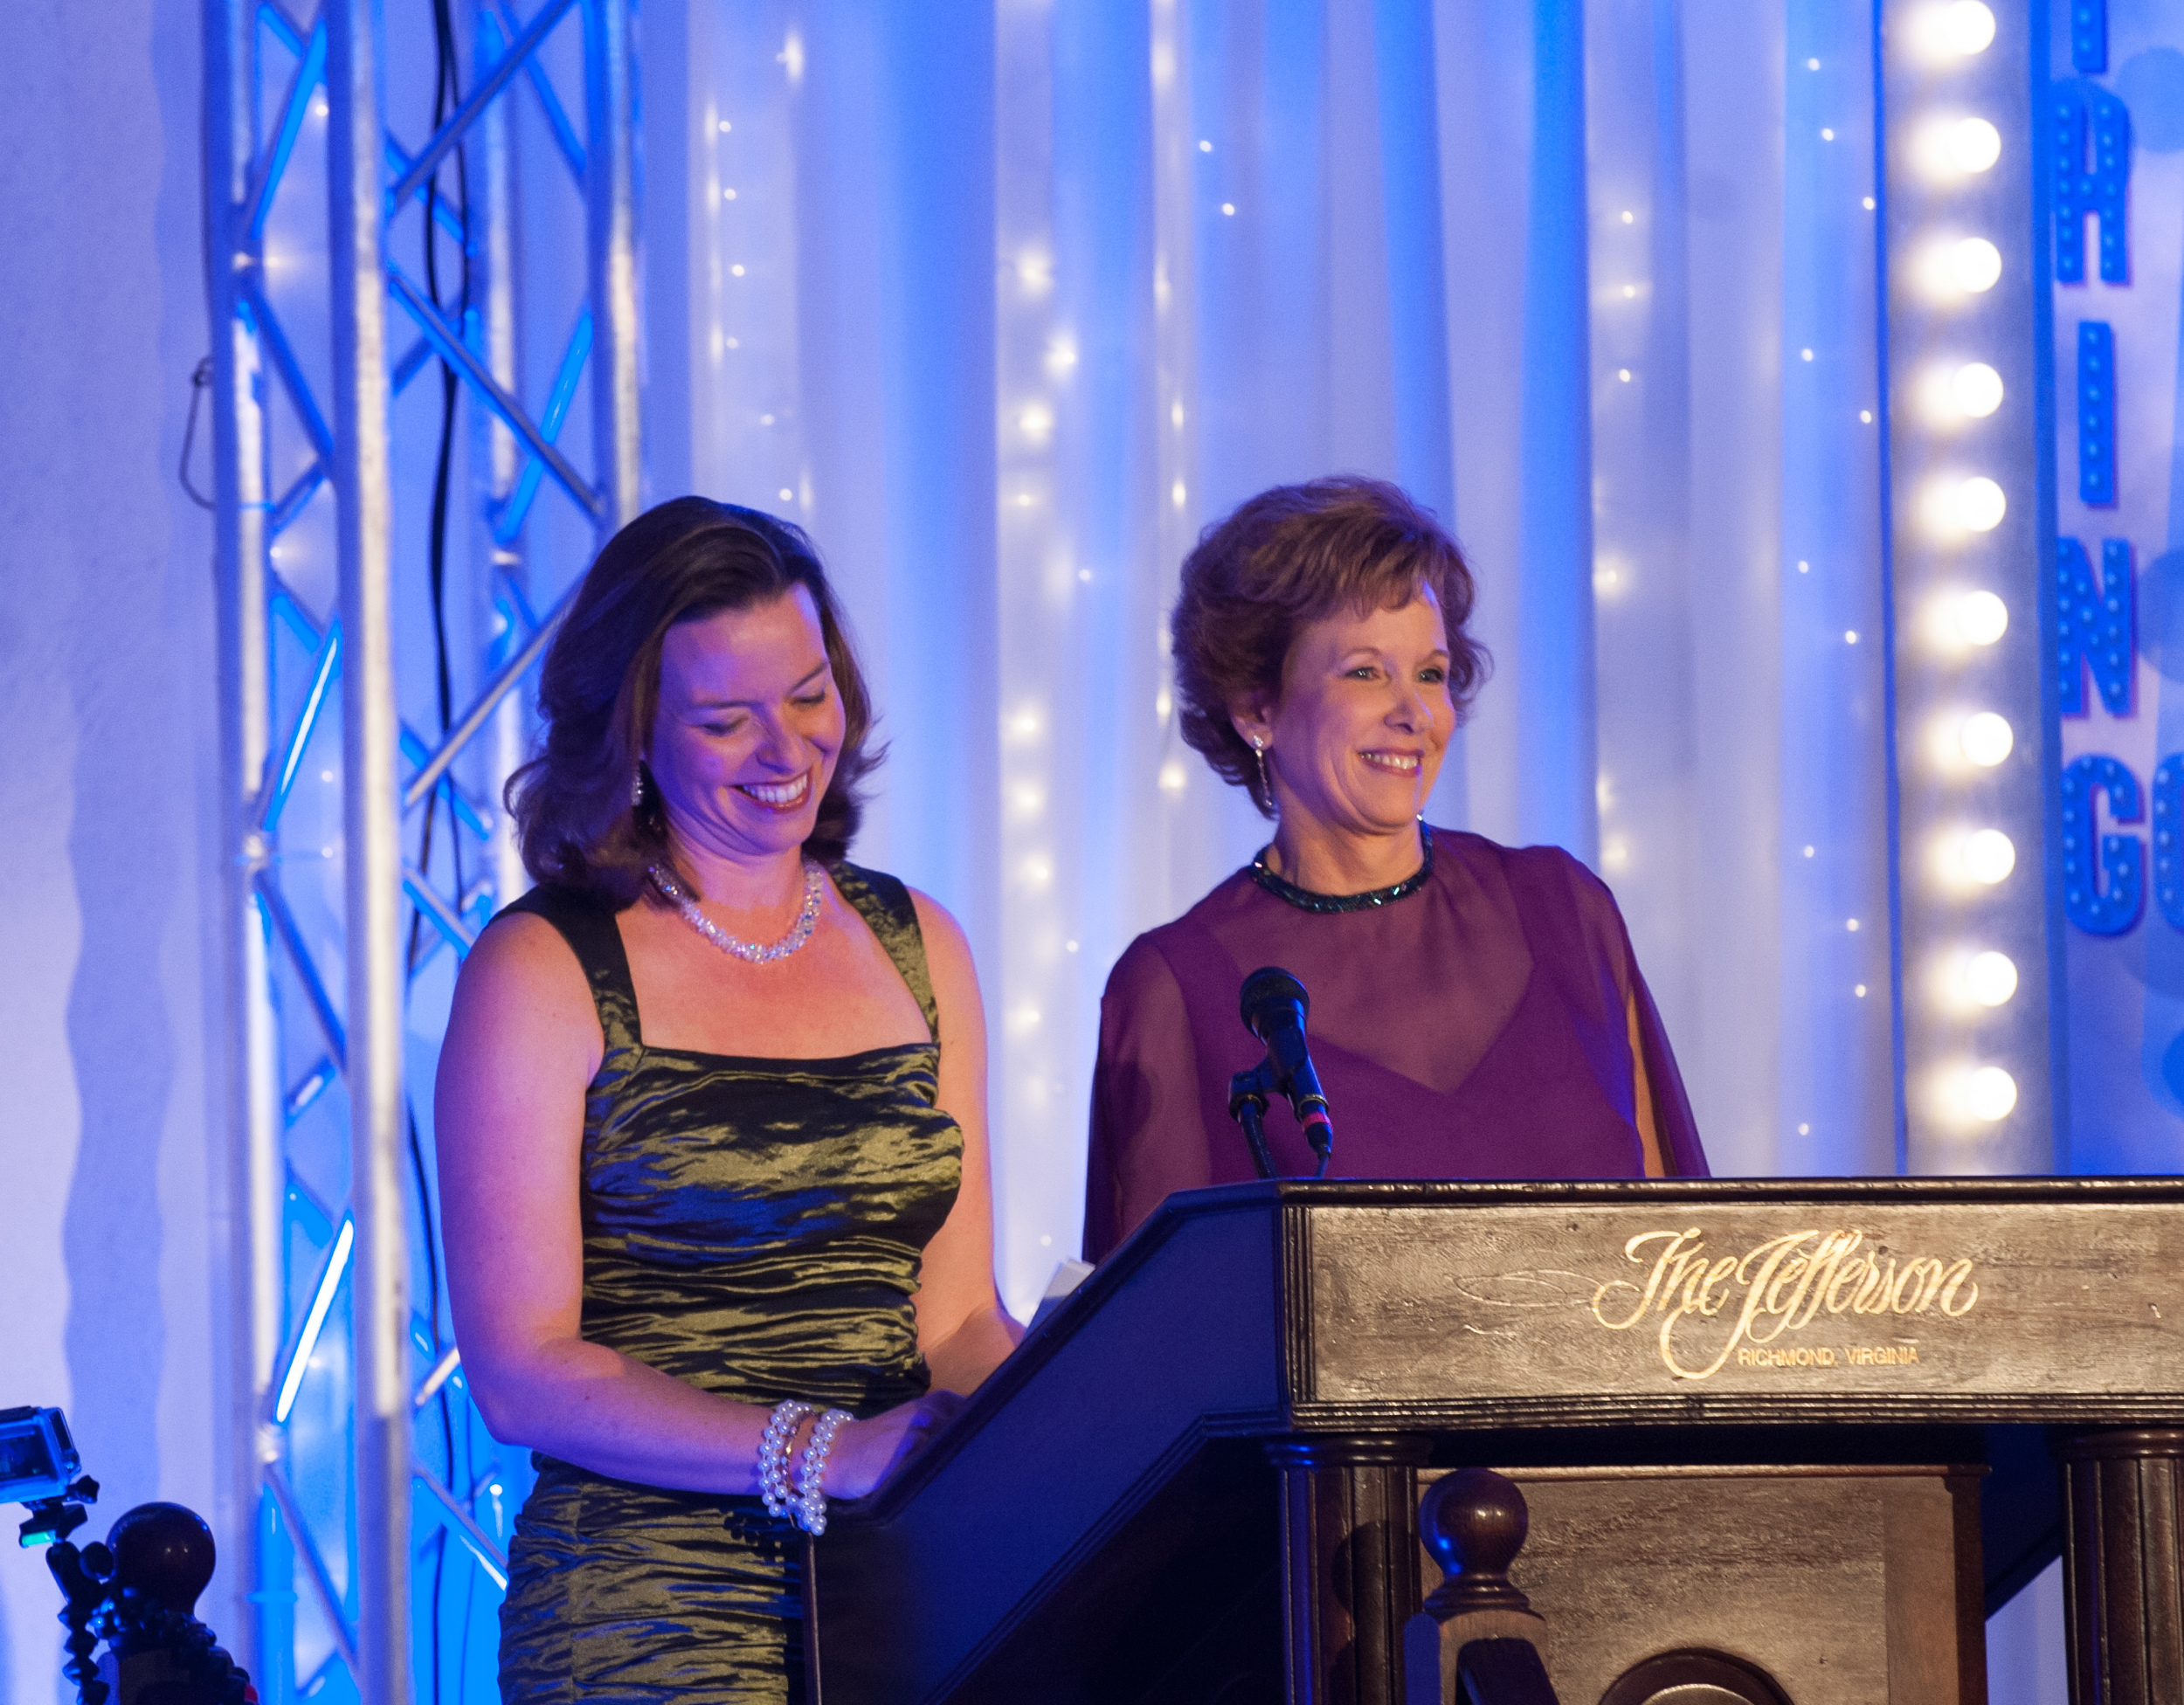 Event Co-Chairs, Anne-Marie Anderson & Laura Lee Chandler